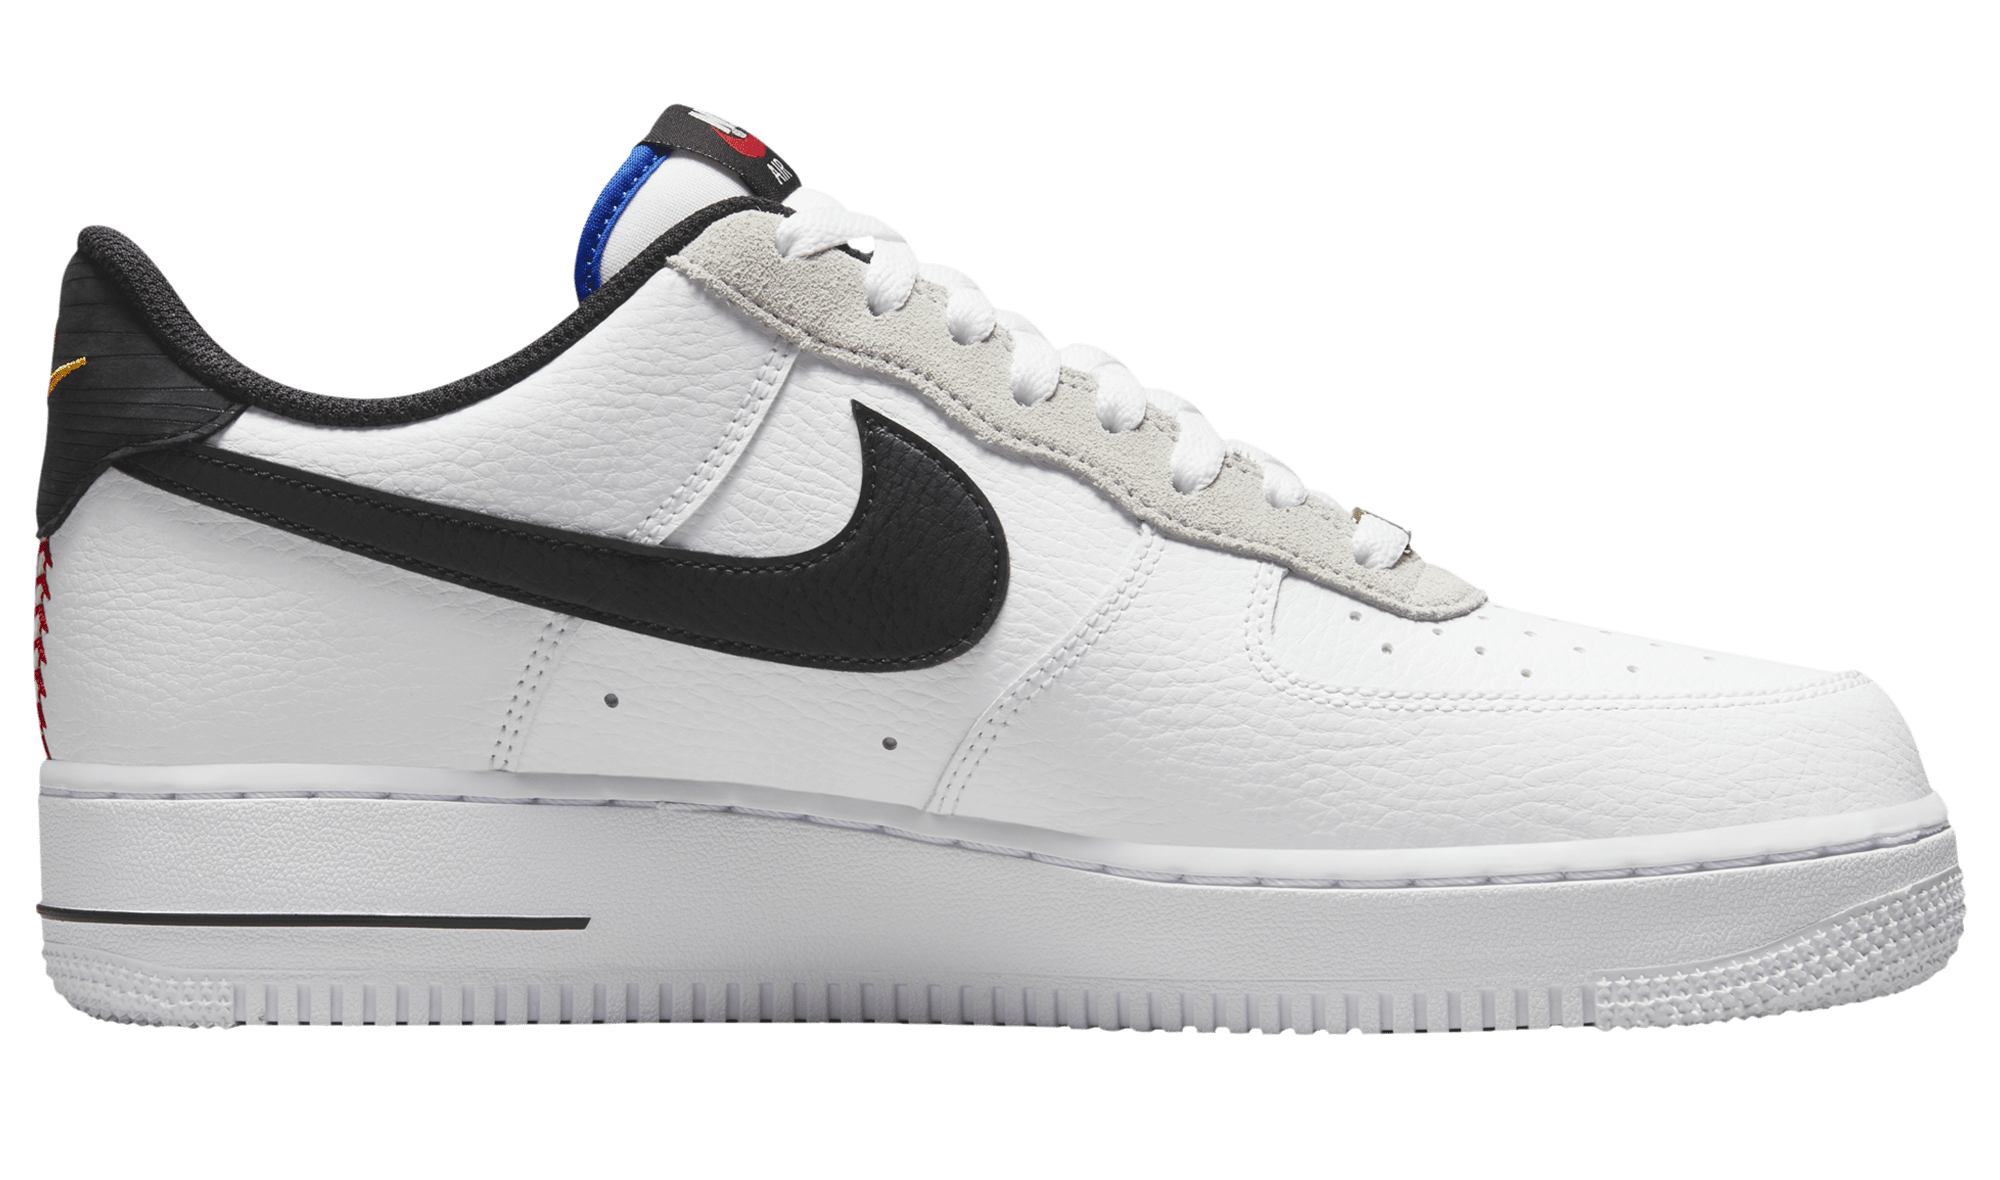 Nike Air Force 1 Low 'Like Father, Like Son' CD5192-100 Medial